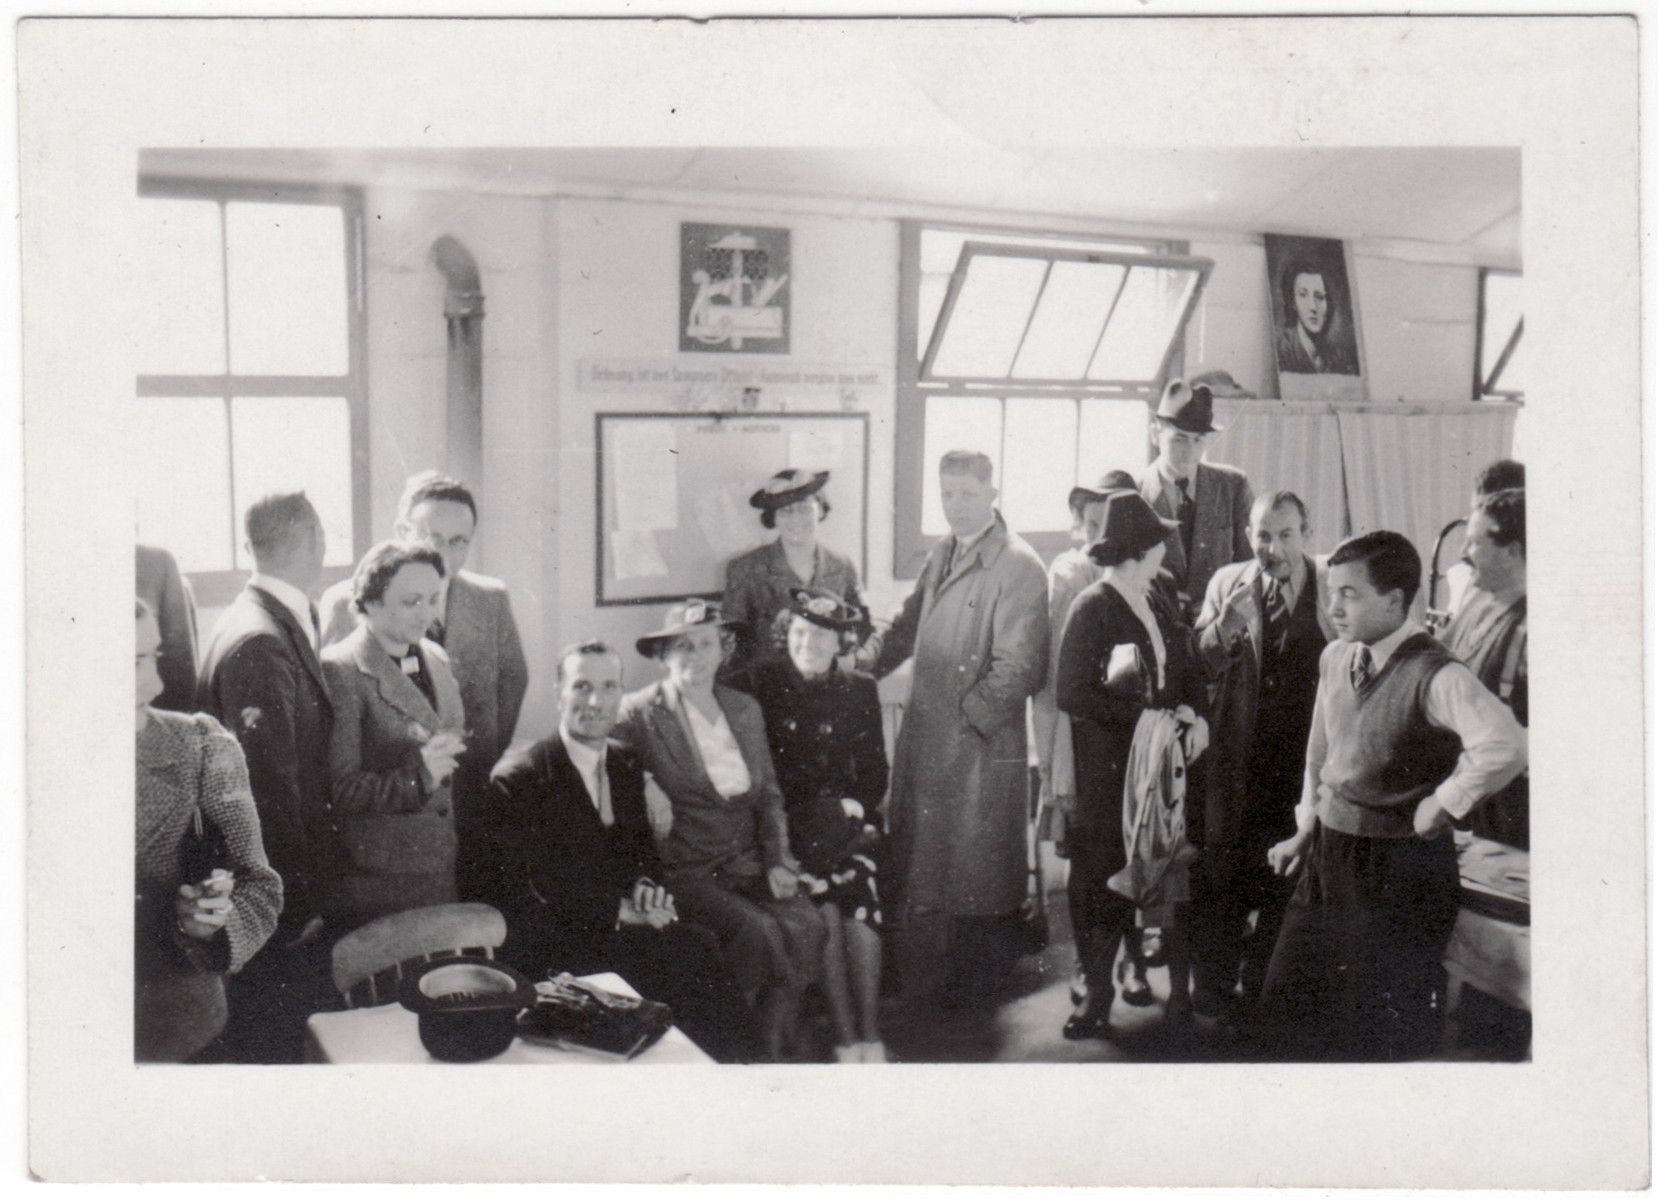 Jewish refugees gather and socialize inside a building of the Kitchener refugee camp.  Among those pictured are Sydney Kulmann (third from the right facing the camera) and [possibly his fiancee Marion Bassfreund] next to him.